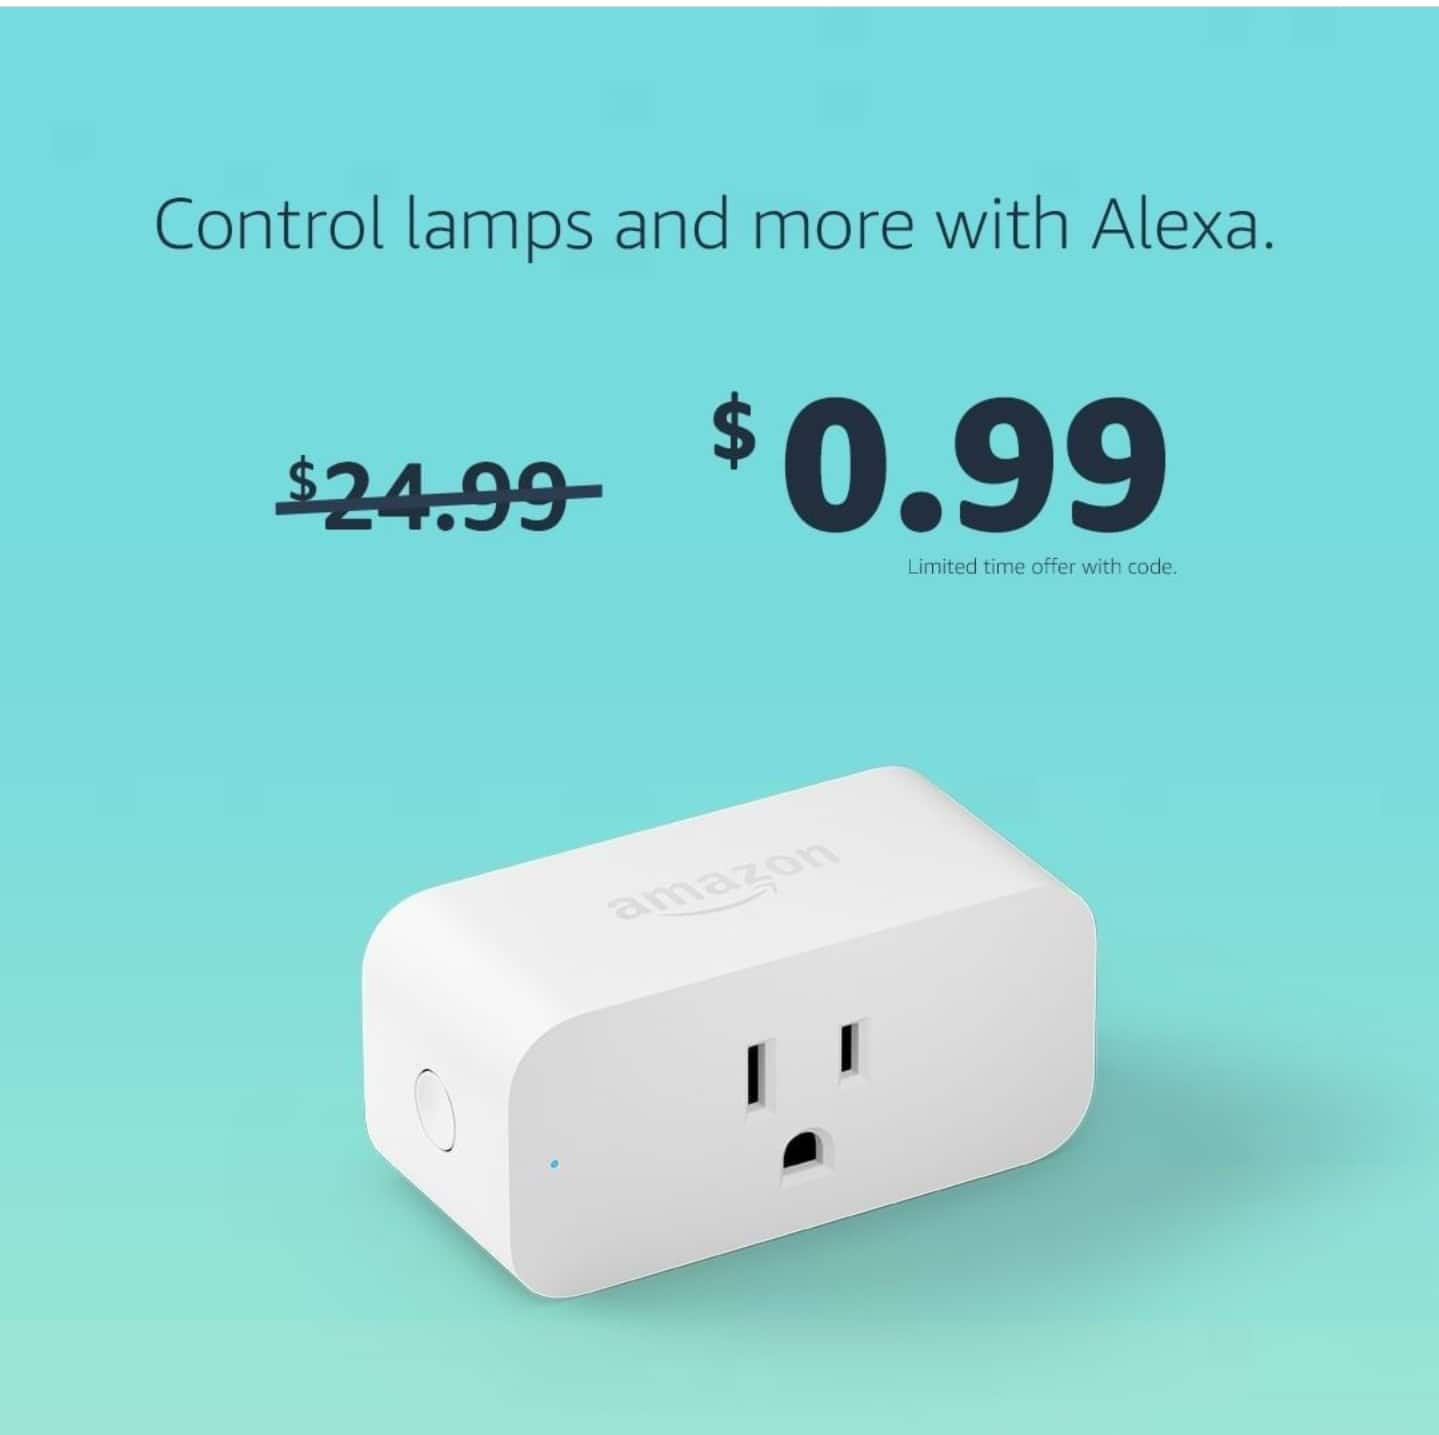 YMMV Amazon Smart Plug, works with Alexa $0.99